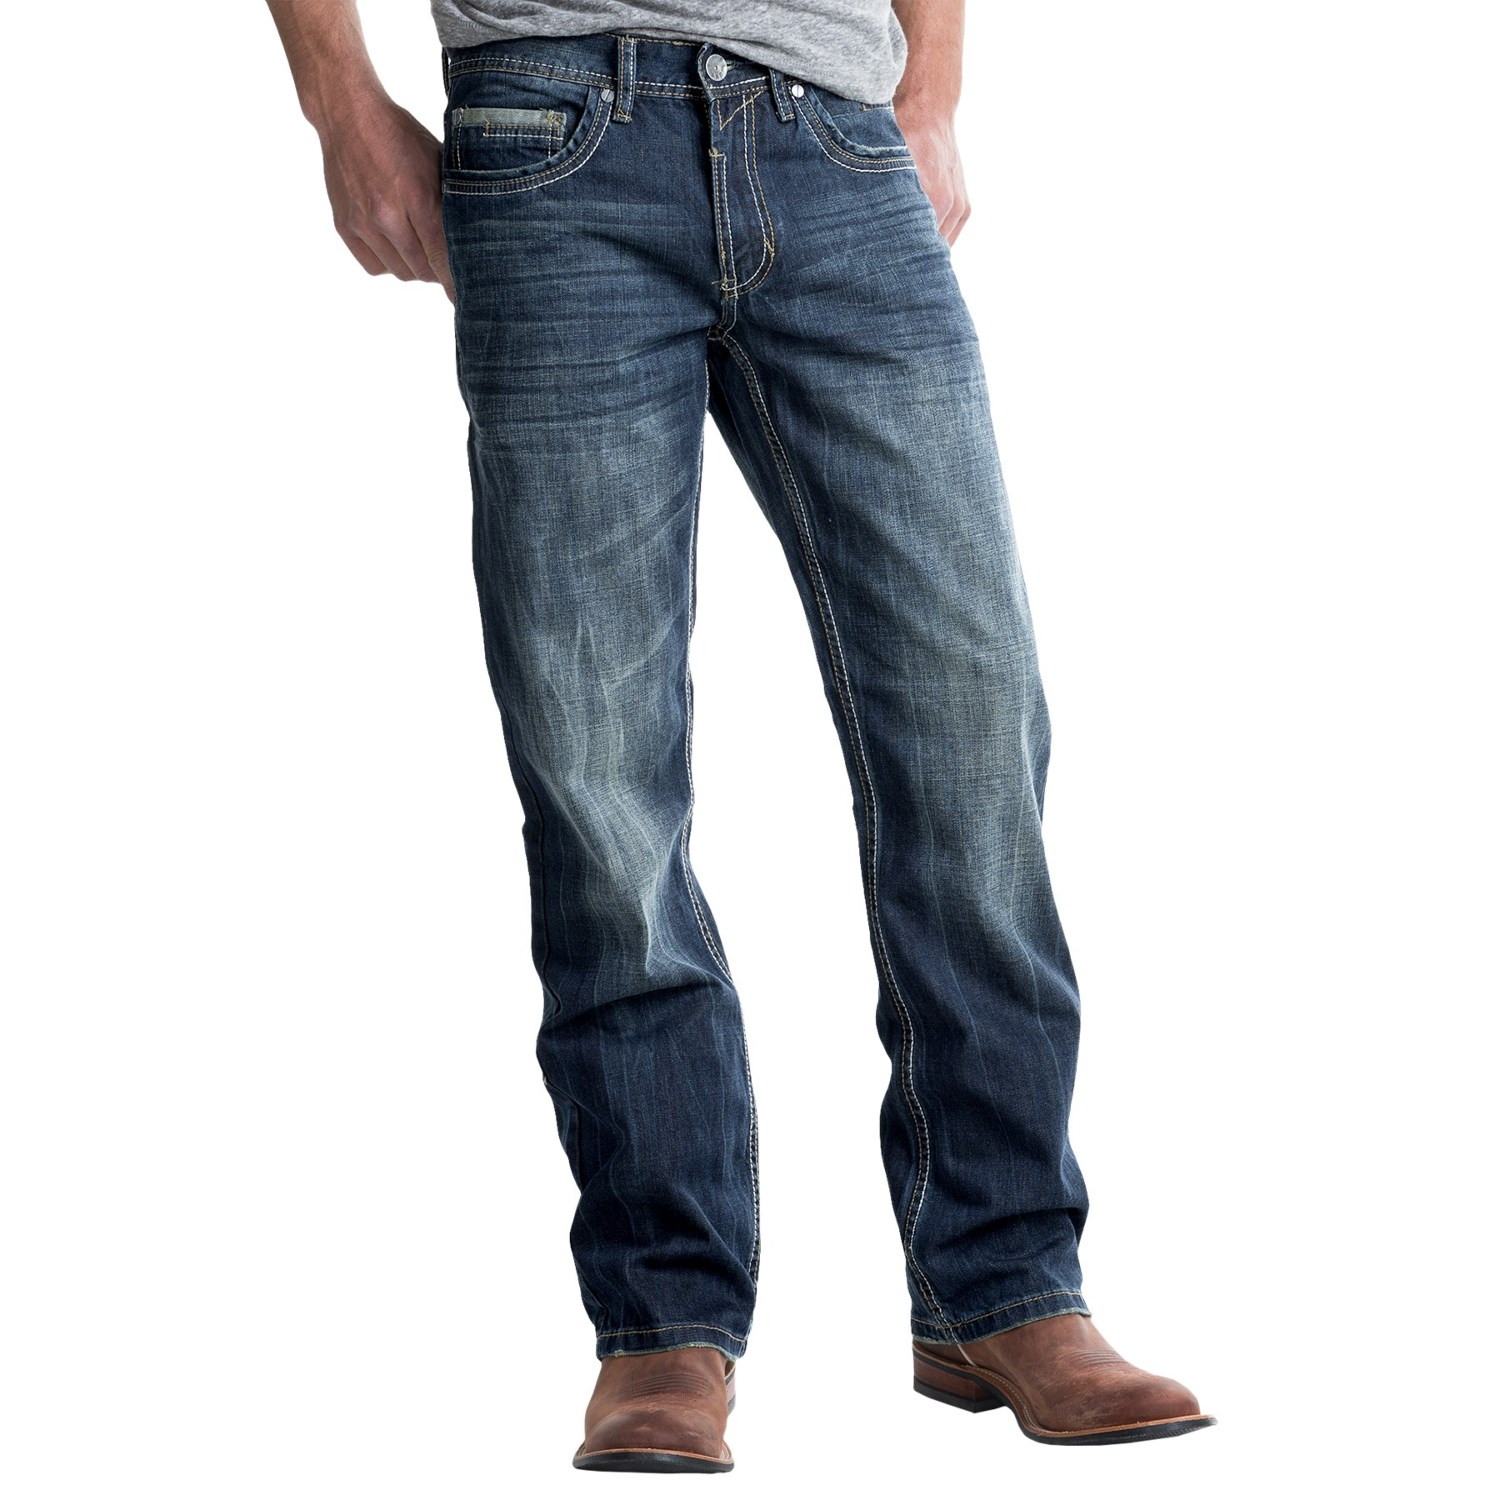 Axel Baltic Jeans (For Men) - Save 60%